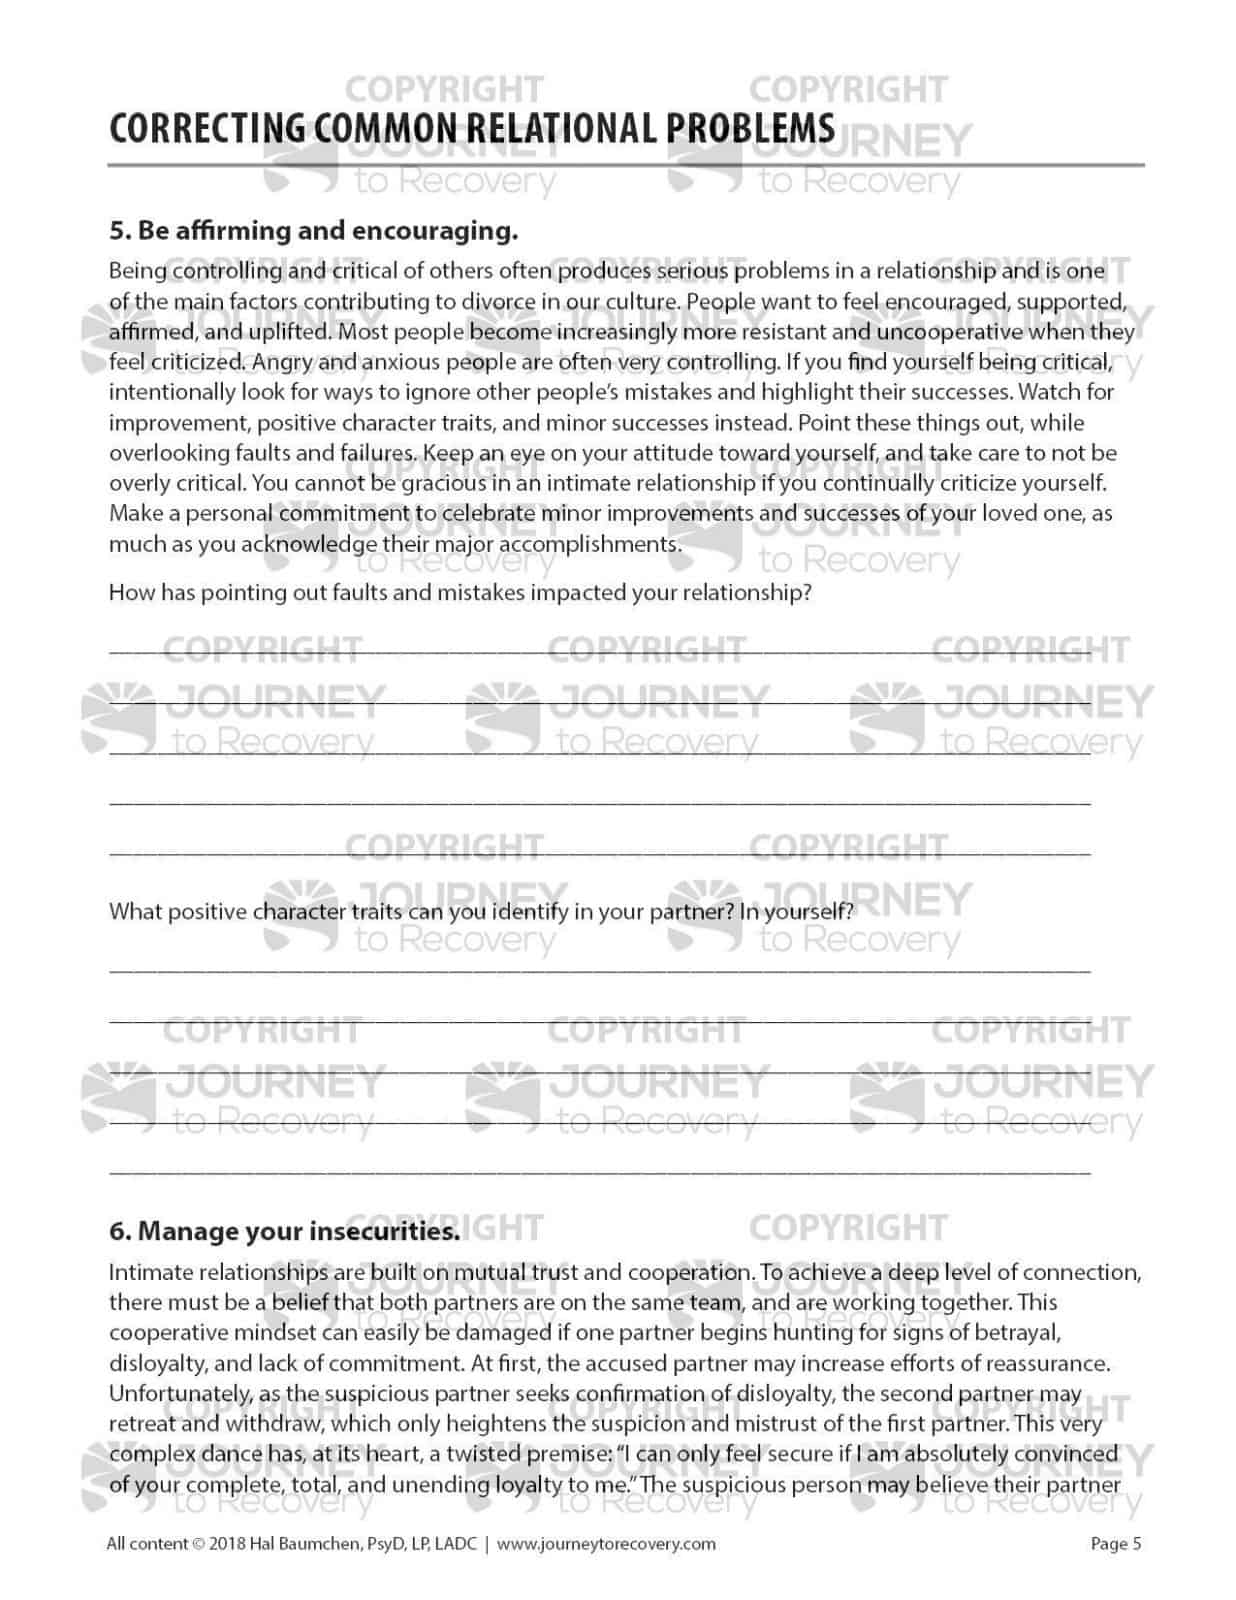 Correcting Common Relational Problems Cod Worksheet